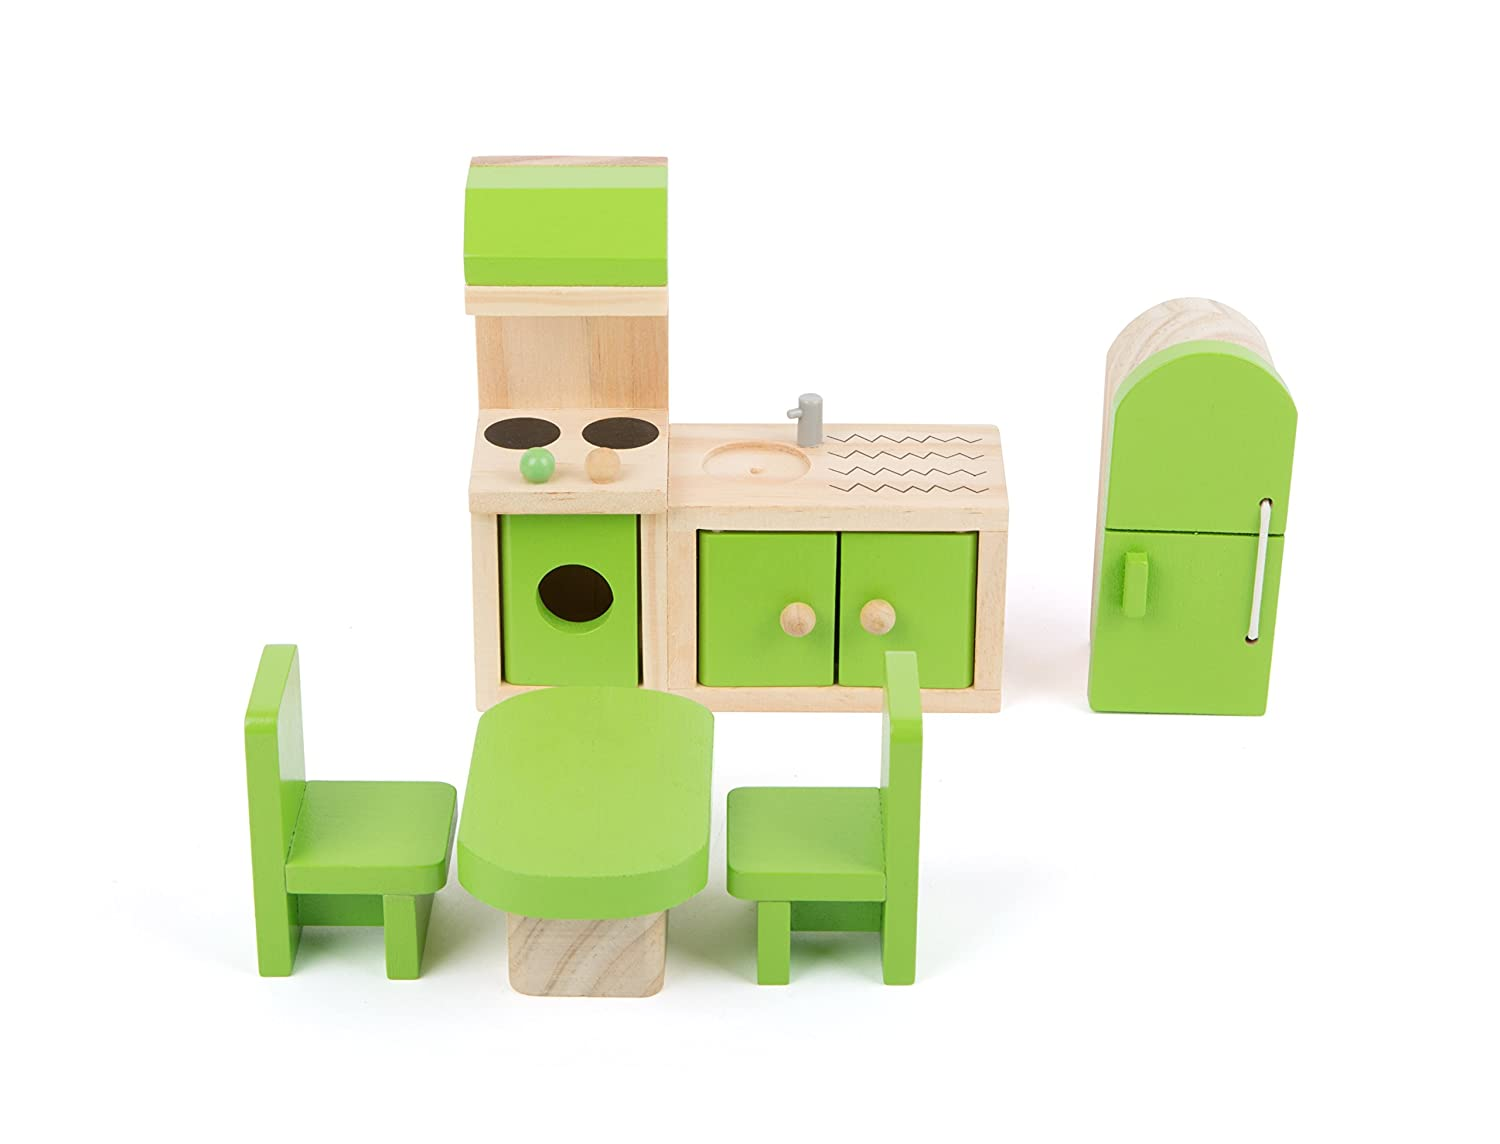 Small Foot 10873 Wooden Furniture Dollhouse, Incl. Fridge, Kitchen Unit, Table and Chairs, Suitable for Bending Ideal Doll Accessories for Children from . and up   B078ZZVYGC